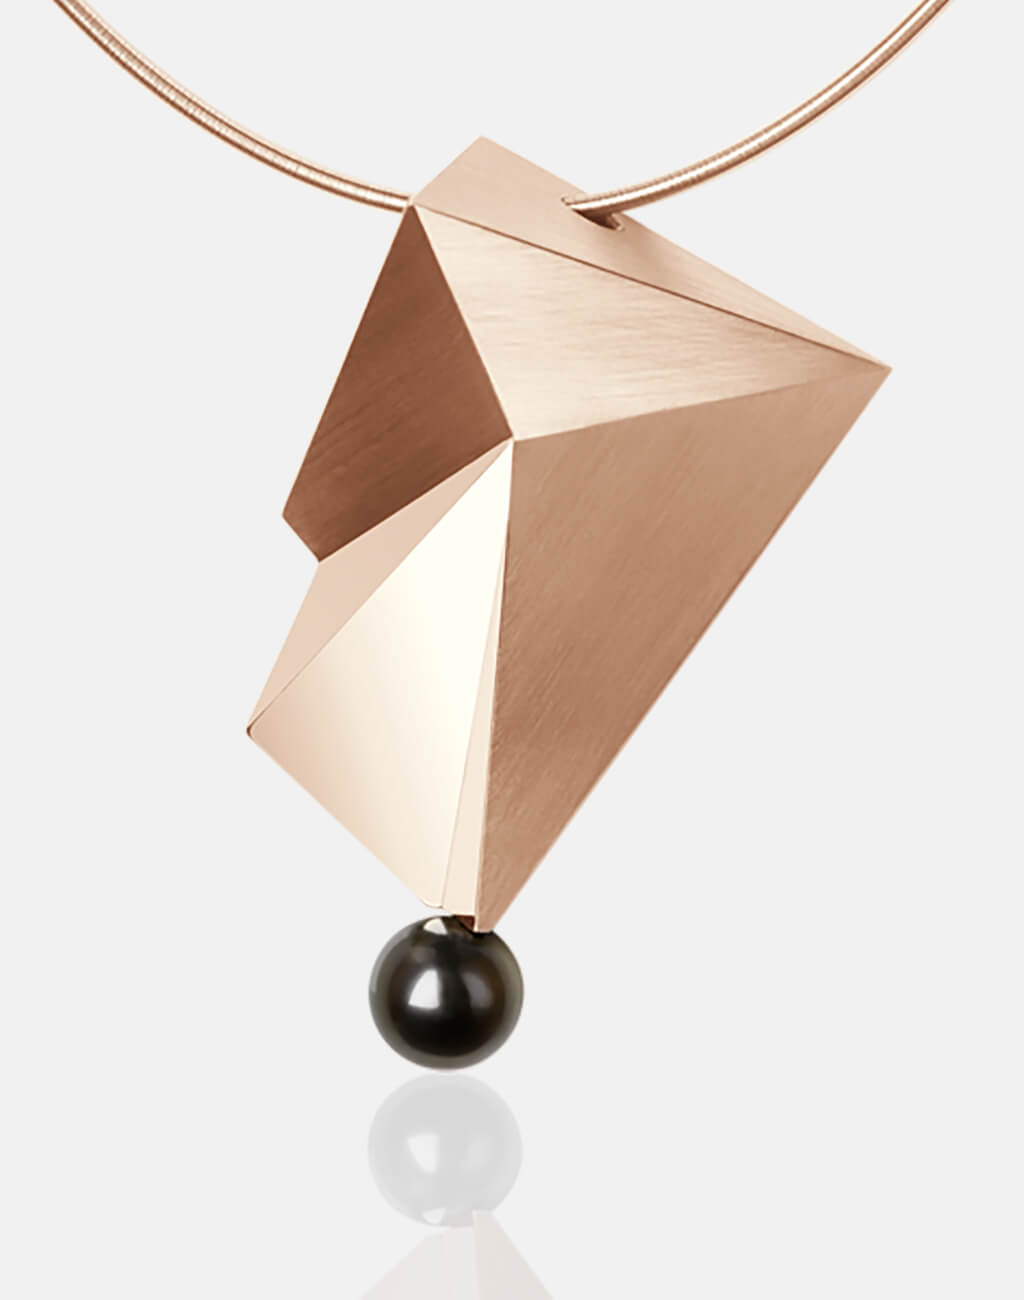 Cyllene | Collier, Kettenanhänger, Kette, 750/- Rosegold, Tahitiperle | necklace, pendant, 18kt rose gold, tahitian pearl | SYNO-Schmuck.com